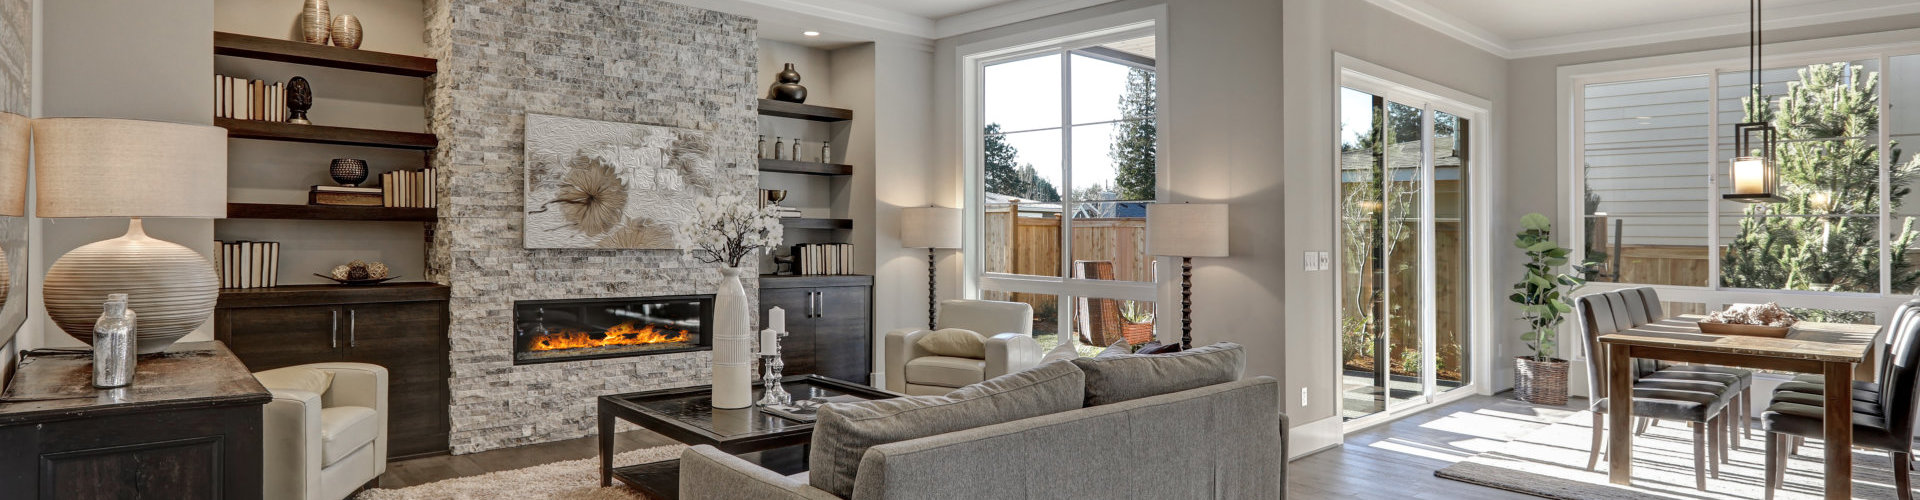 living room interior in gray and brown colors features gray sofa atop dark hardwood floors facing stone fireplace with built-in shelves